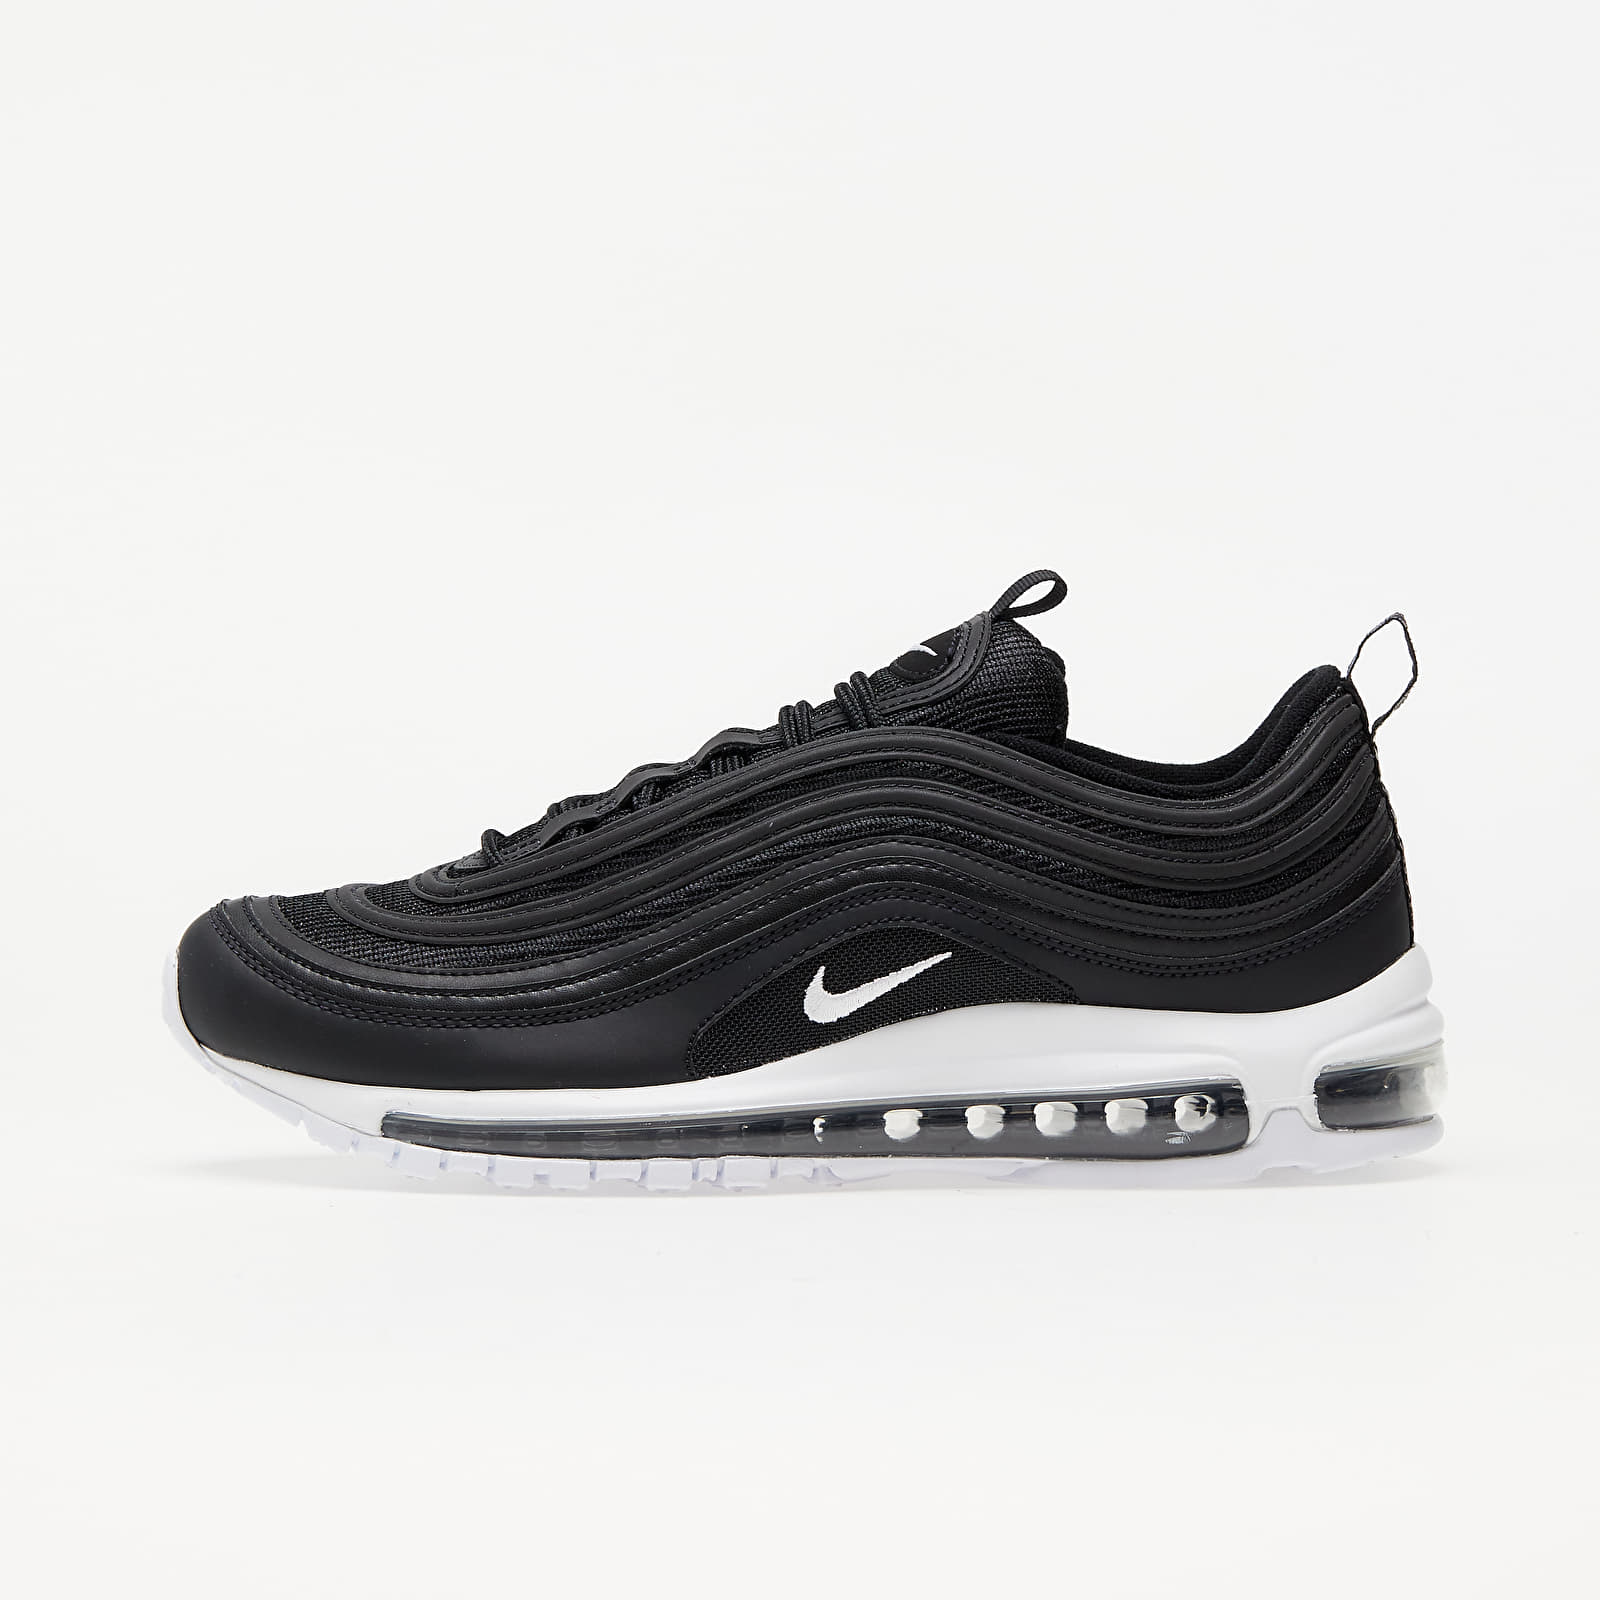 Nike Air Max 97 Black/ White EUR 41